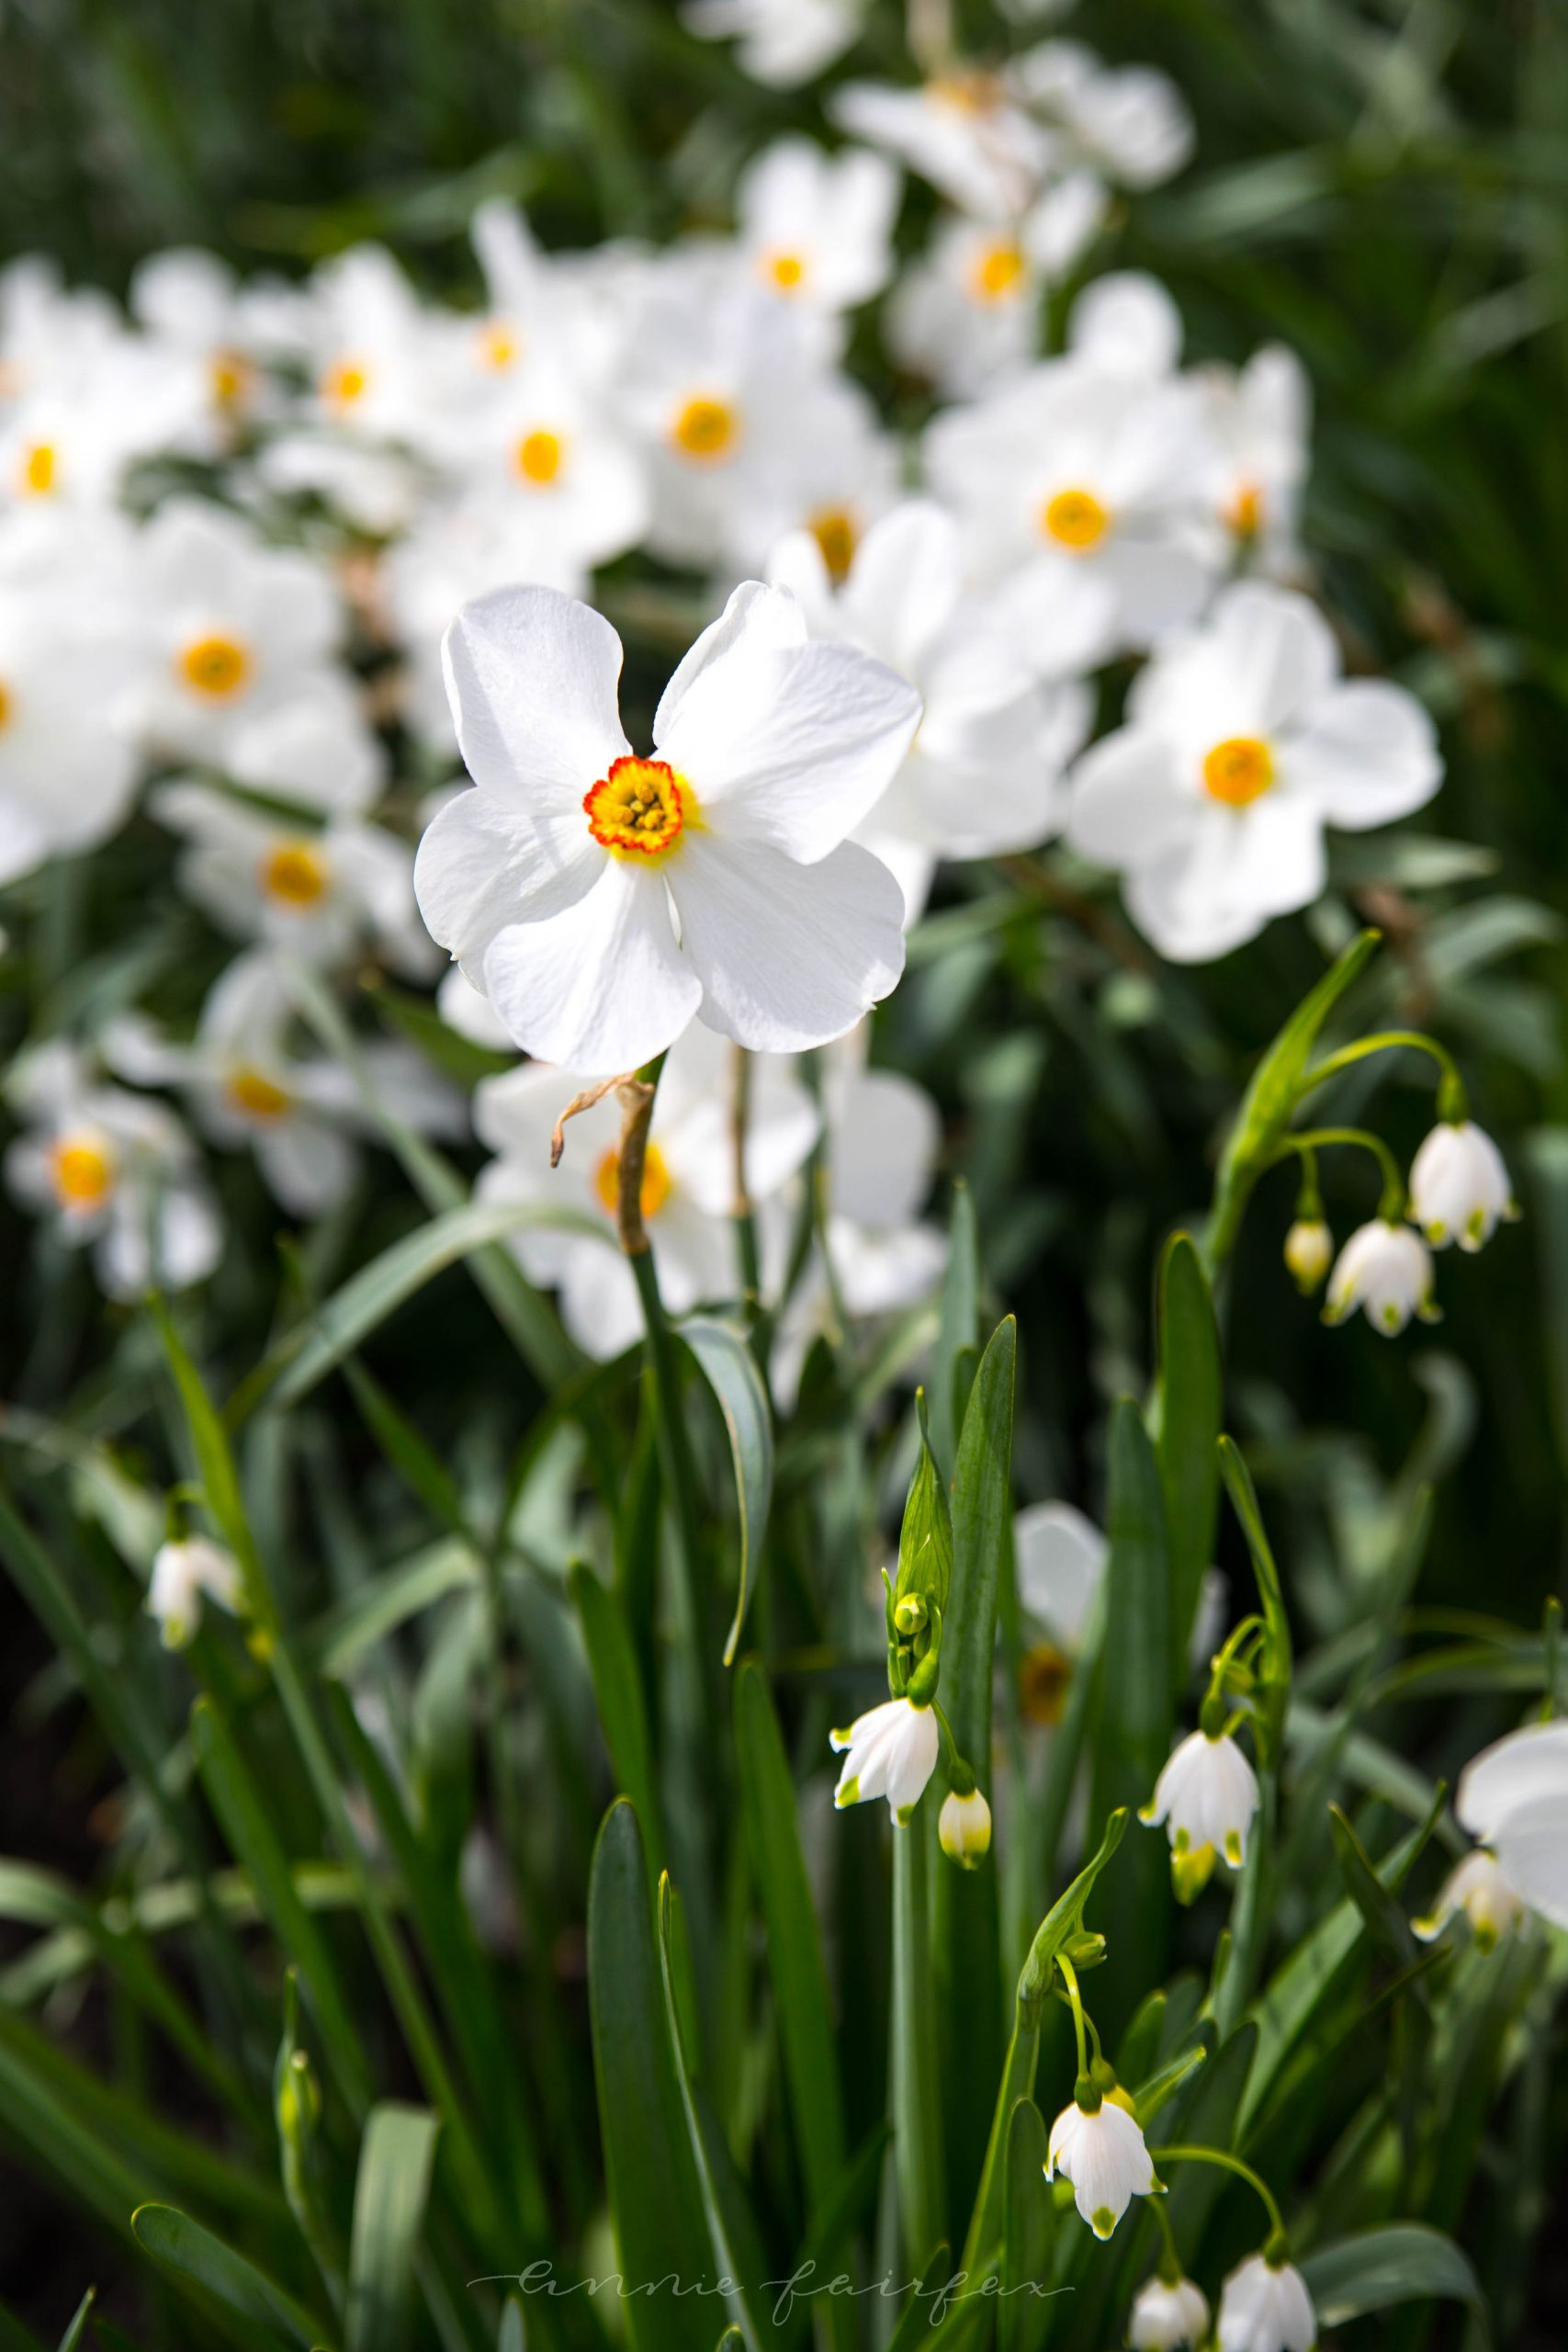 Narcissus Flowers by Annie Fairfax